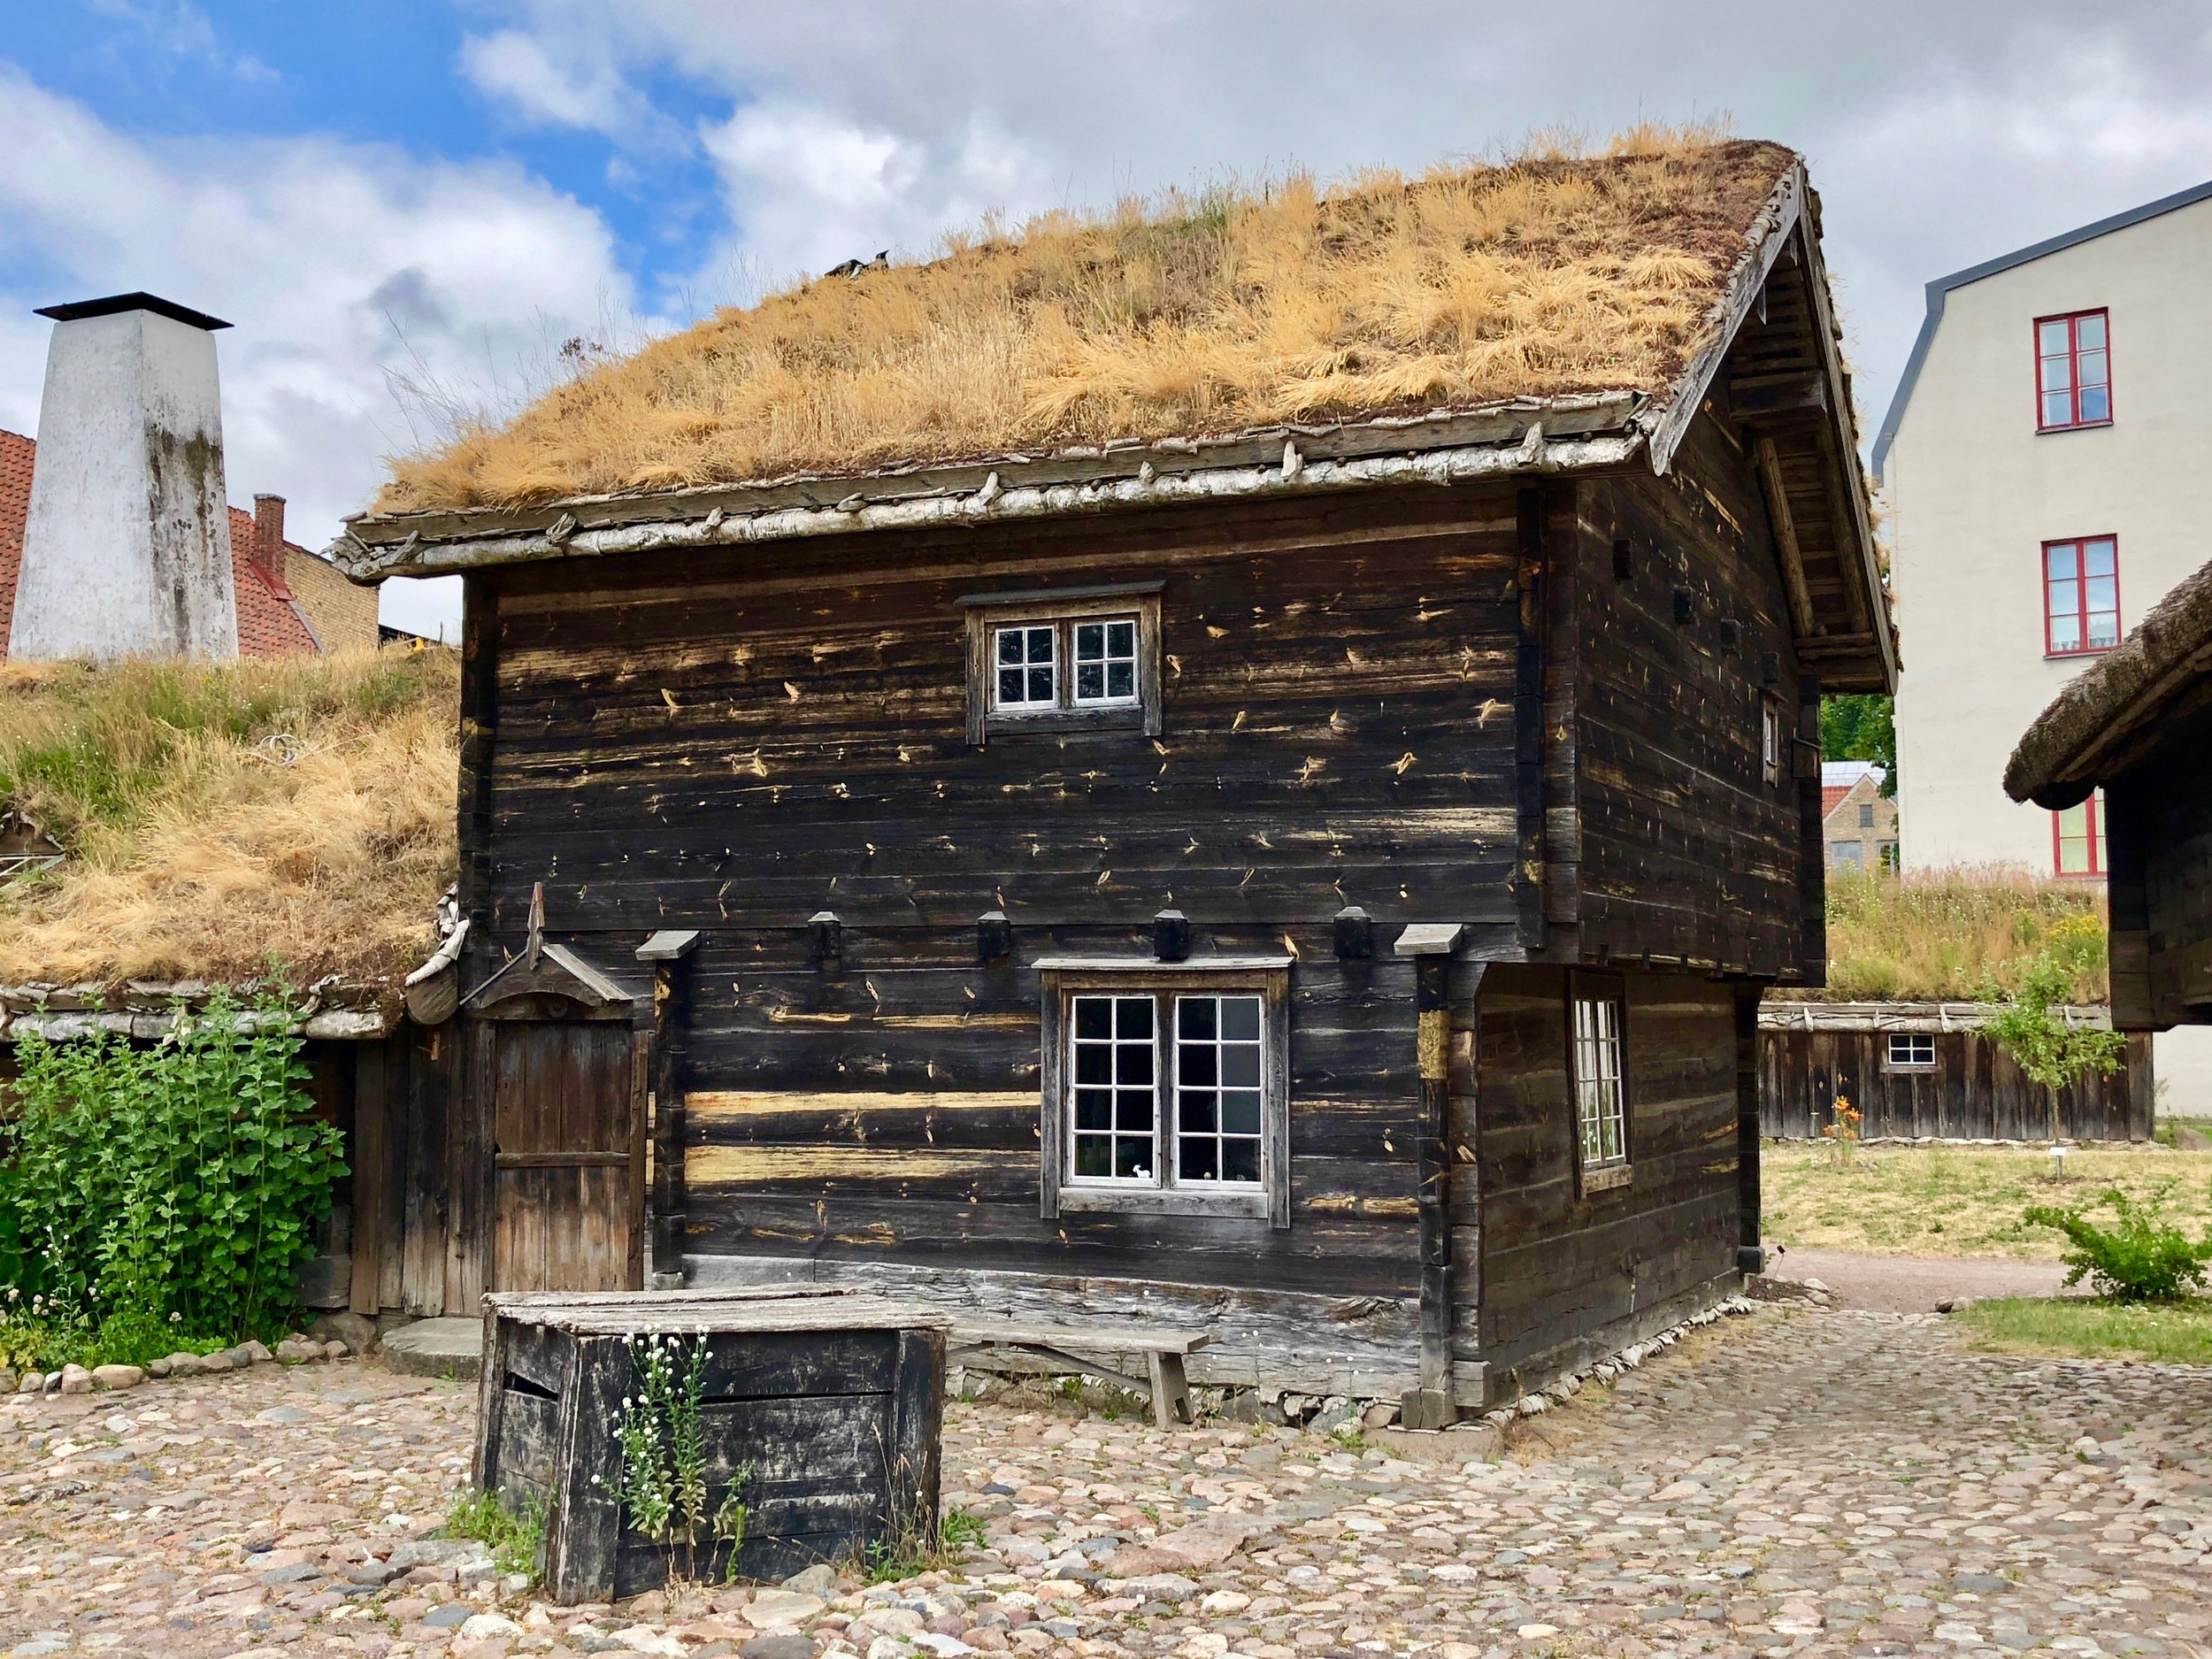 A historic Swedish home, as reconstructed in Kulturen, Lund.